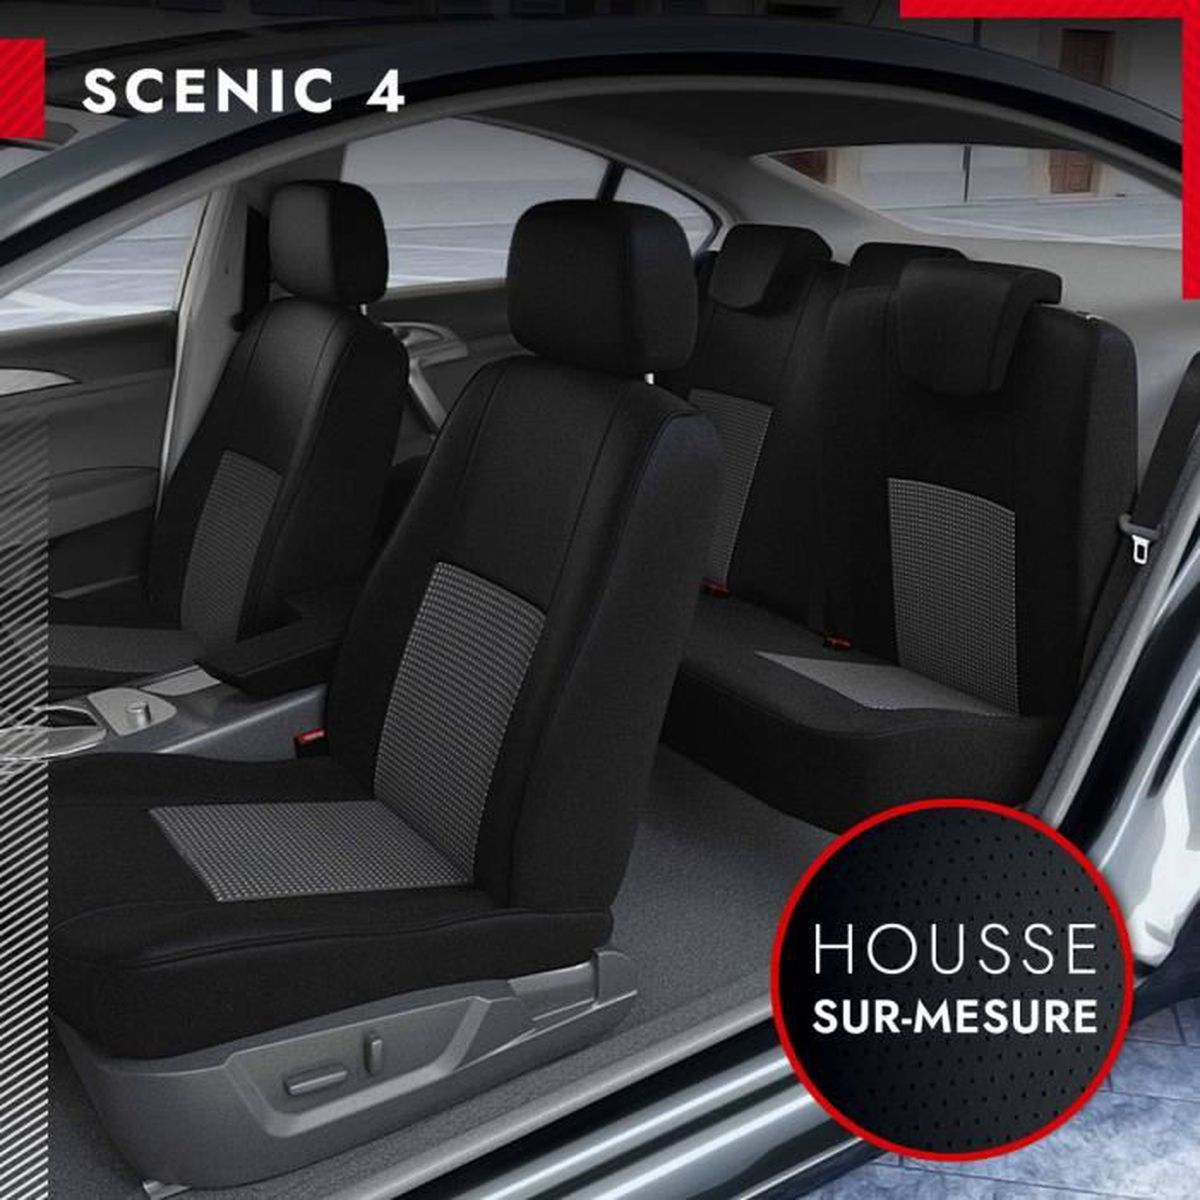 housse si ges voiture sur mesure renault scenic 4 10 2016 2017 achat vente housse de. Black Bedroom Furniture Sets. Home Design Ideas